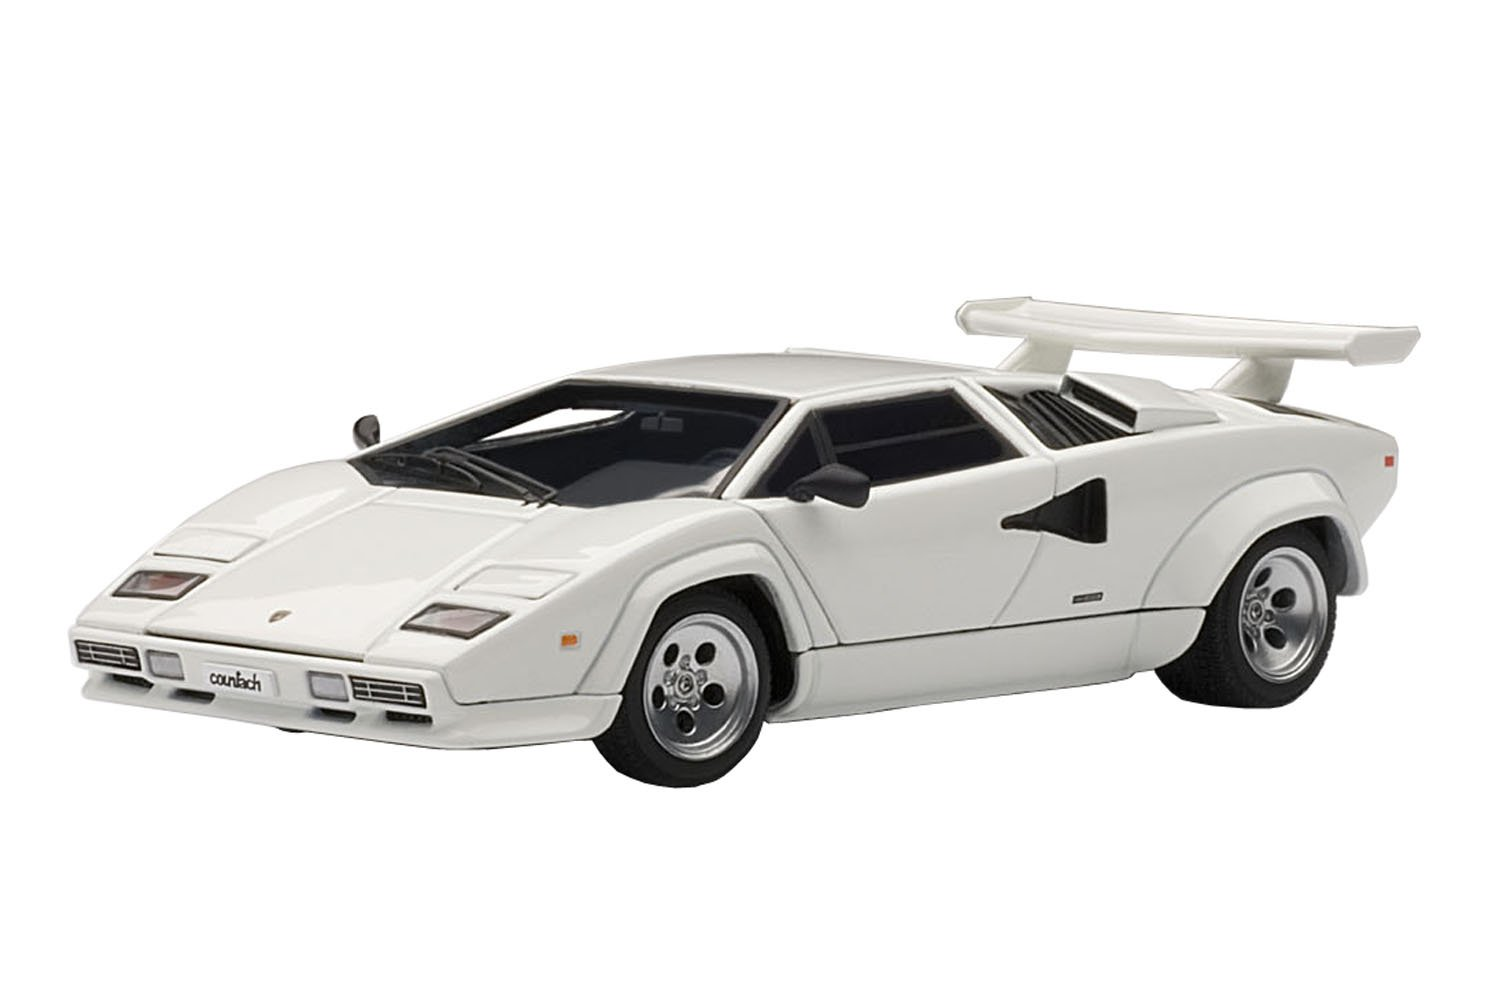 garantizado Lamborghini Countach 5000 S White 1/43 by by by Autoart 54533 Opening hood, doors, trunk. Comes in plastic display showcase. Limited Edition with Certificate of Authenticity. (japan import)  Con precio barato para obtener la mejor marca.